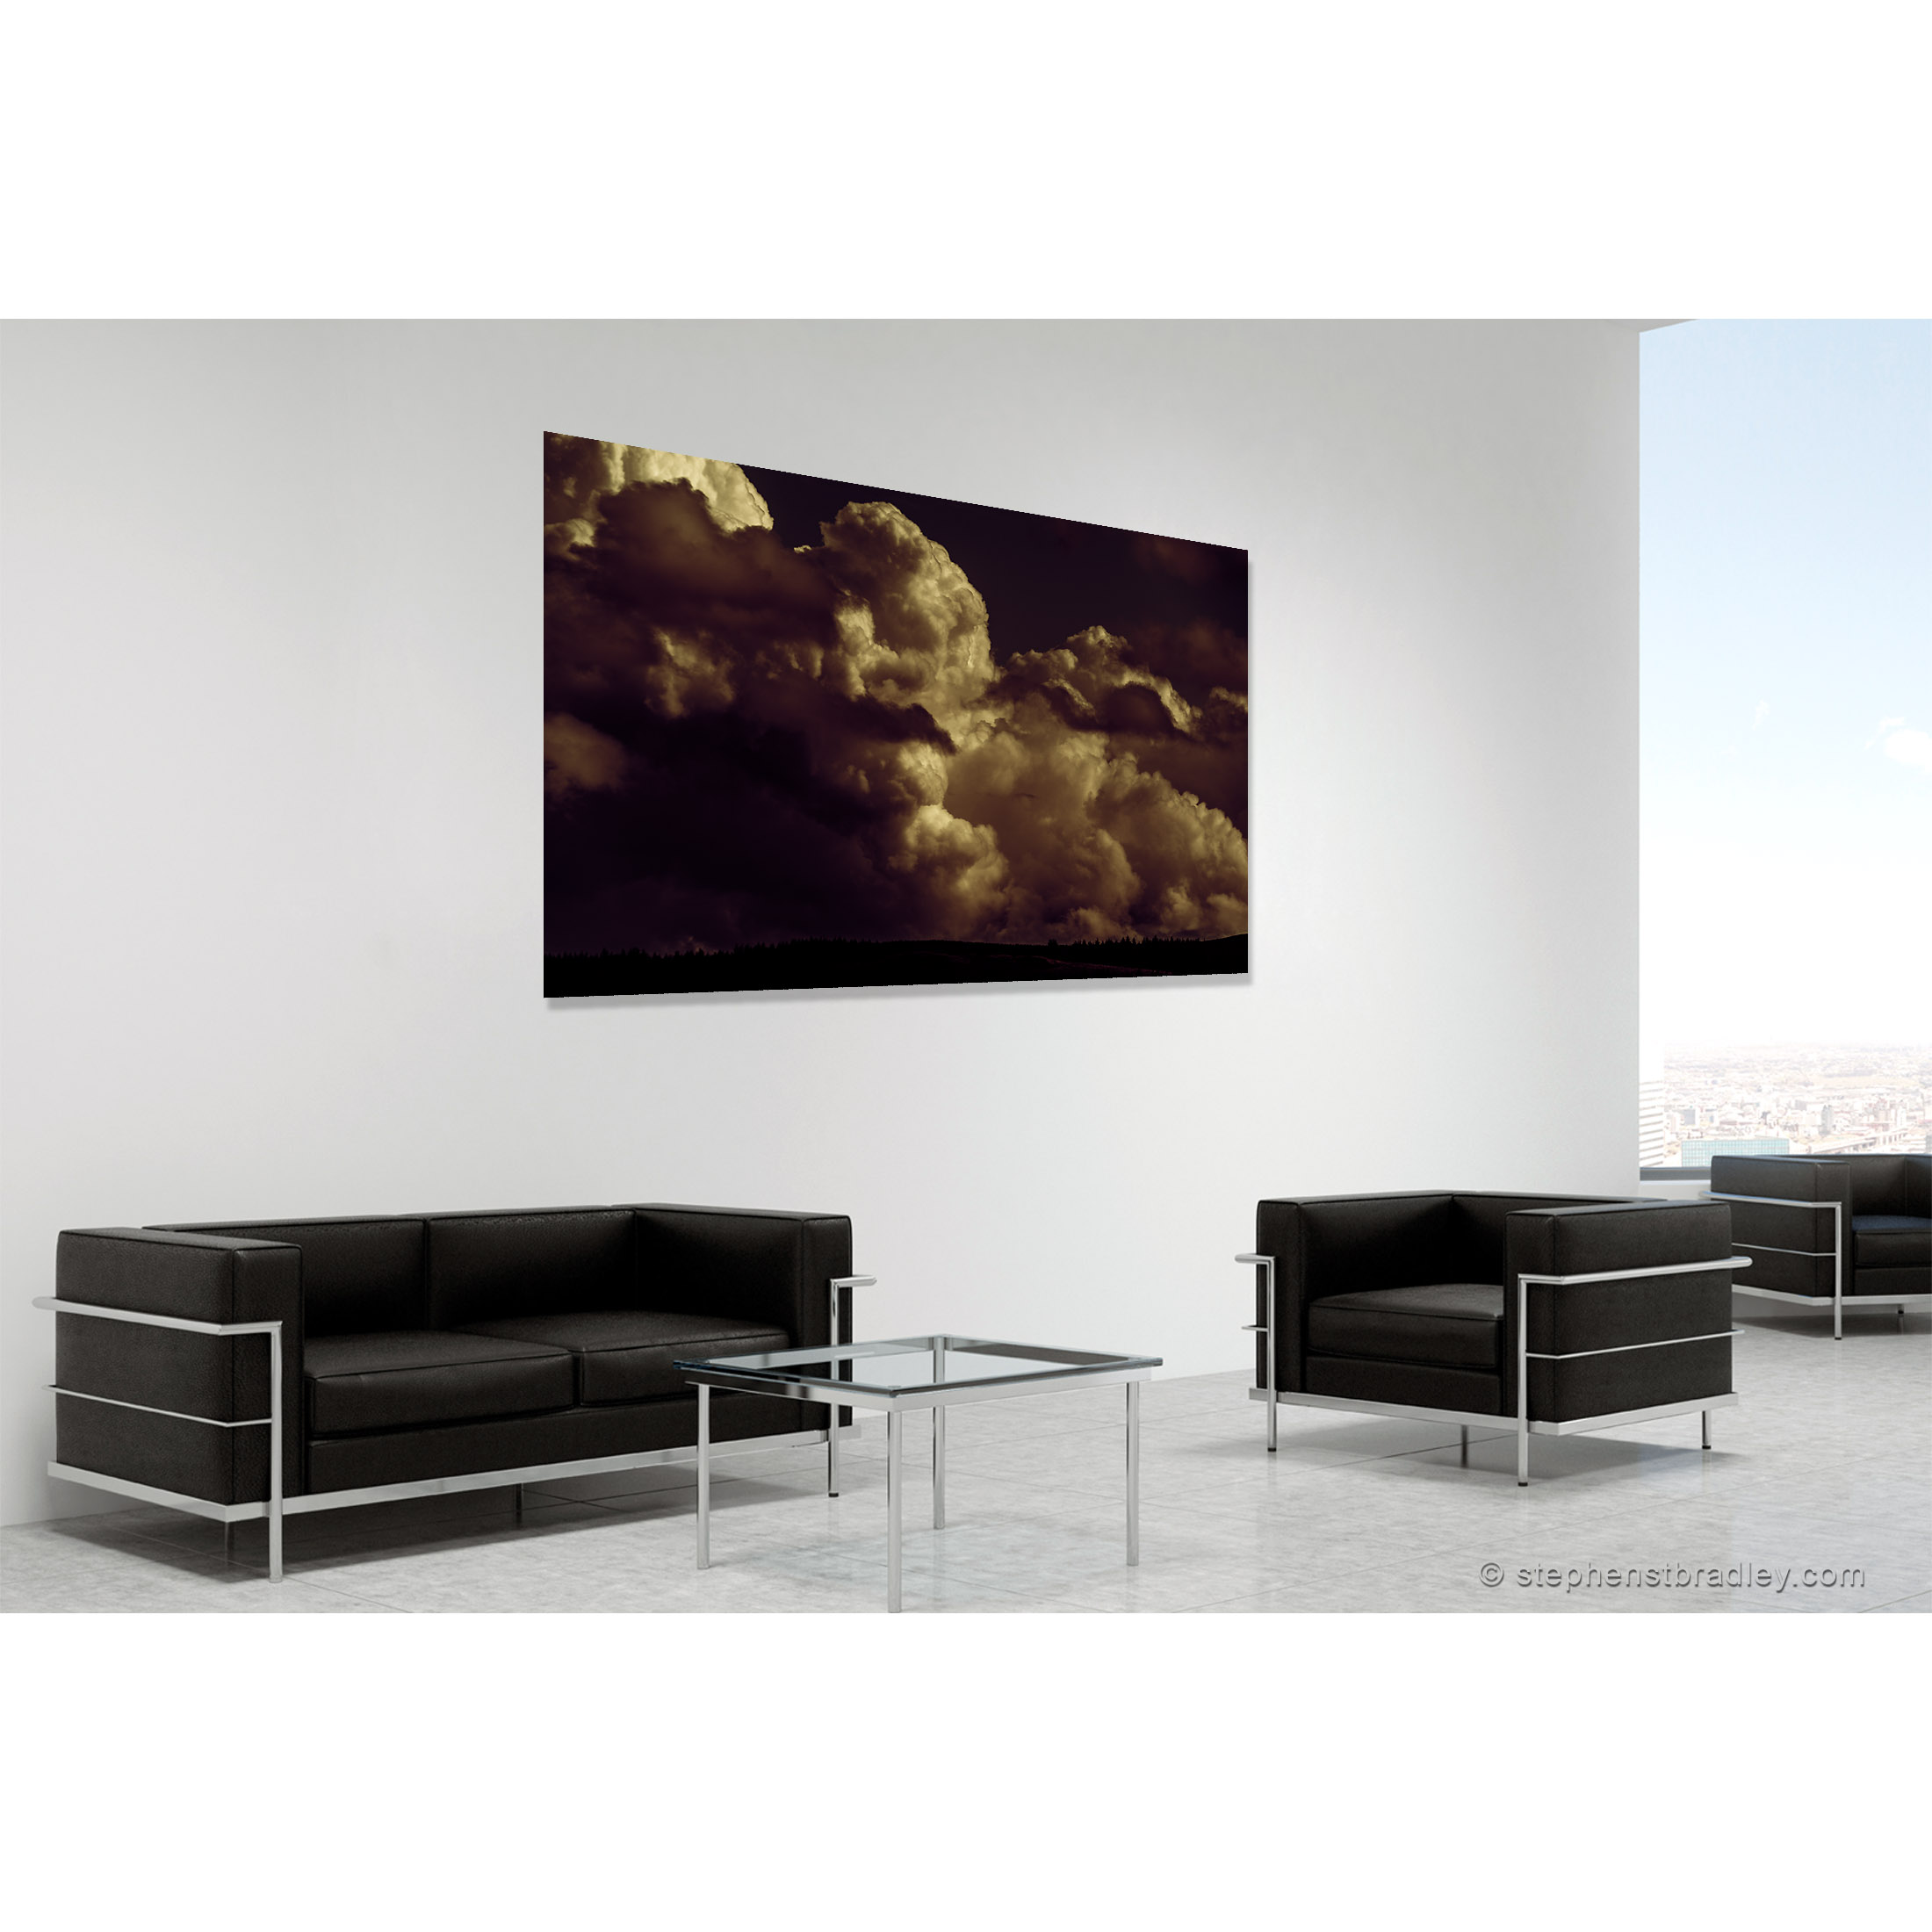 Valley of the Dead. Fine art photo 8777 in room setting - Stephen S T Bradley